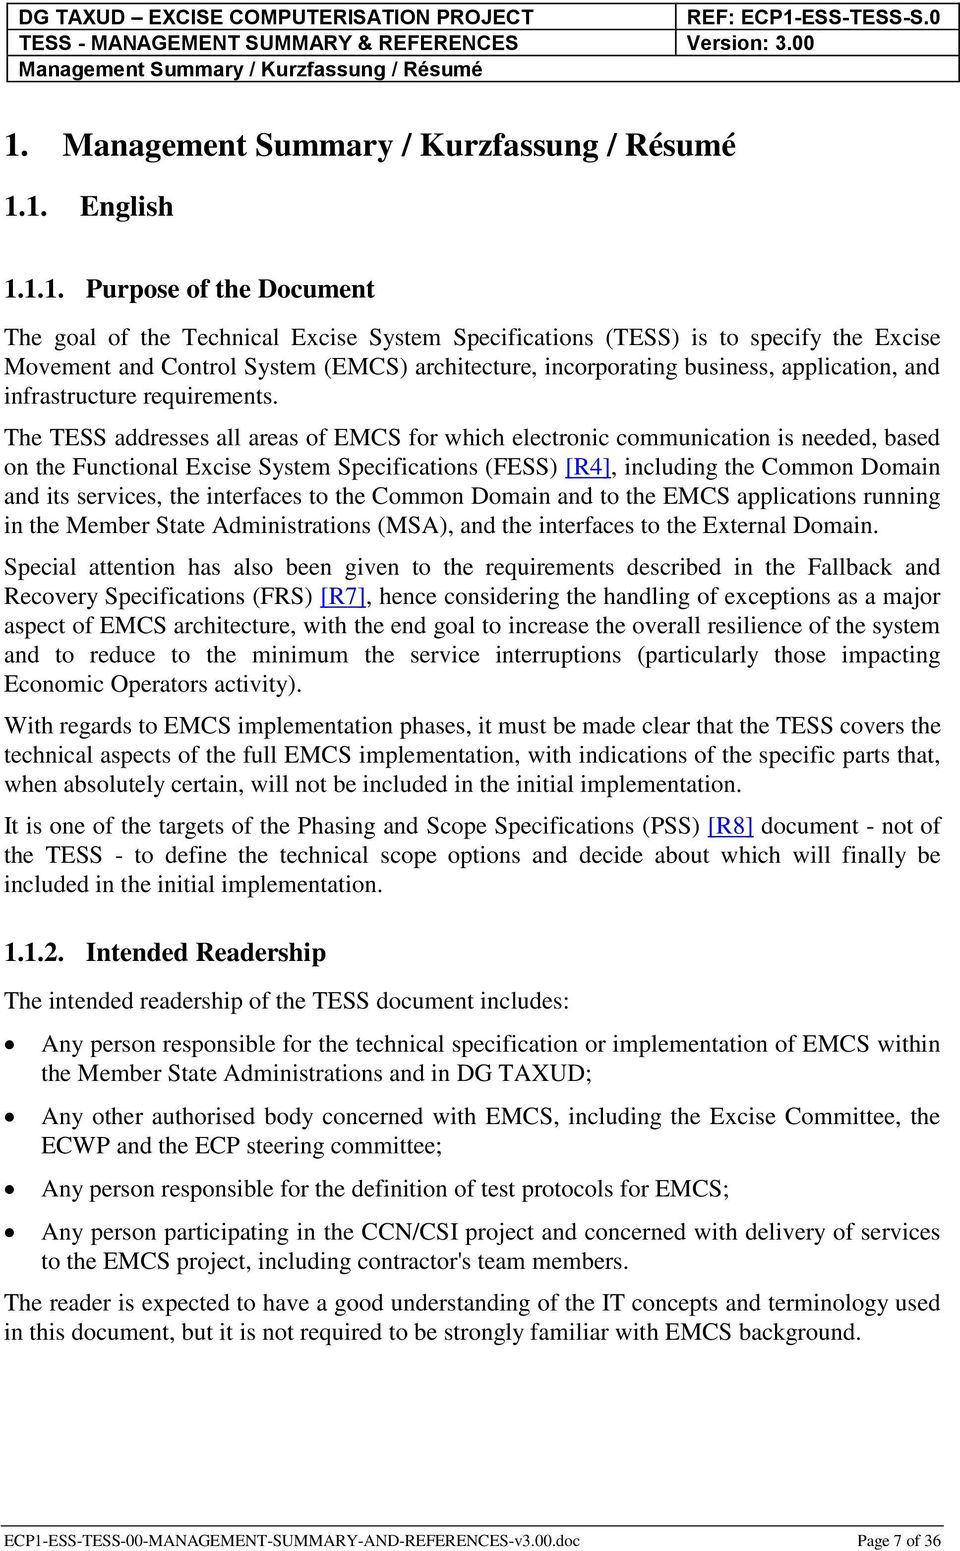 The TESS addresses all areas of EMCS for which electronic communication is needed, based on the Functional Excise System Specifications (FESS) [R4], including the Common Domain and its services, the